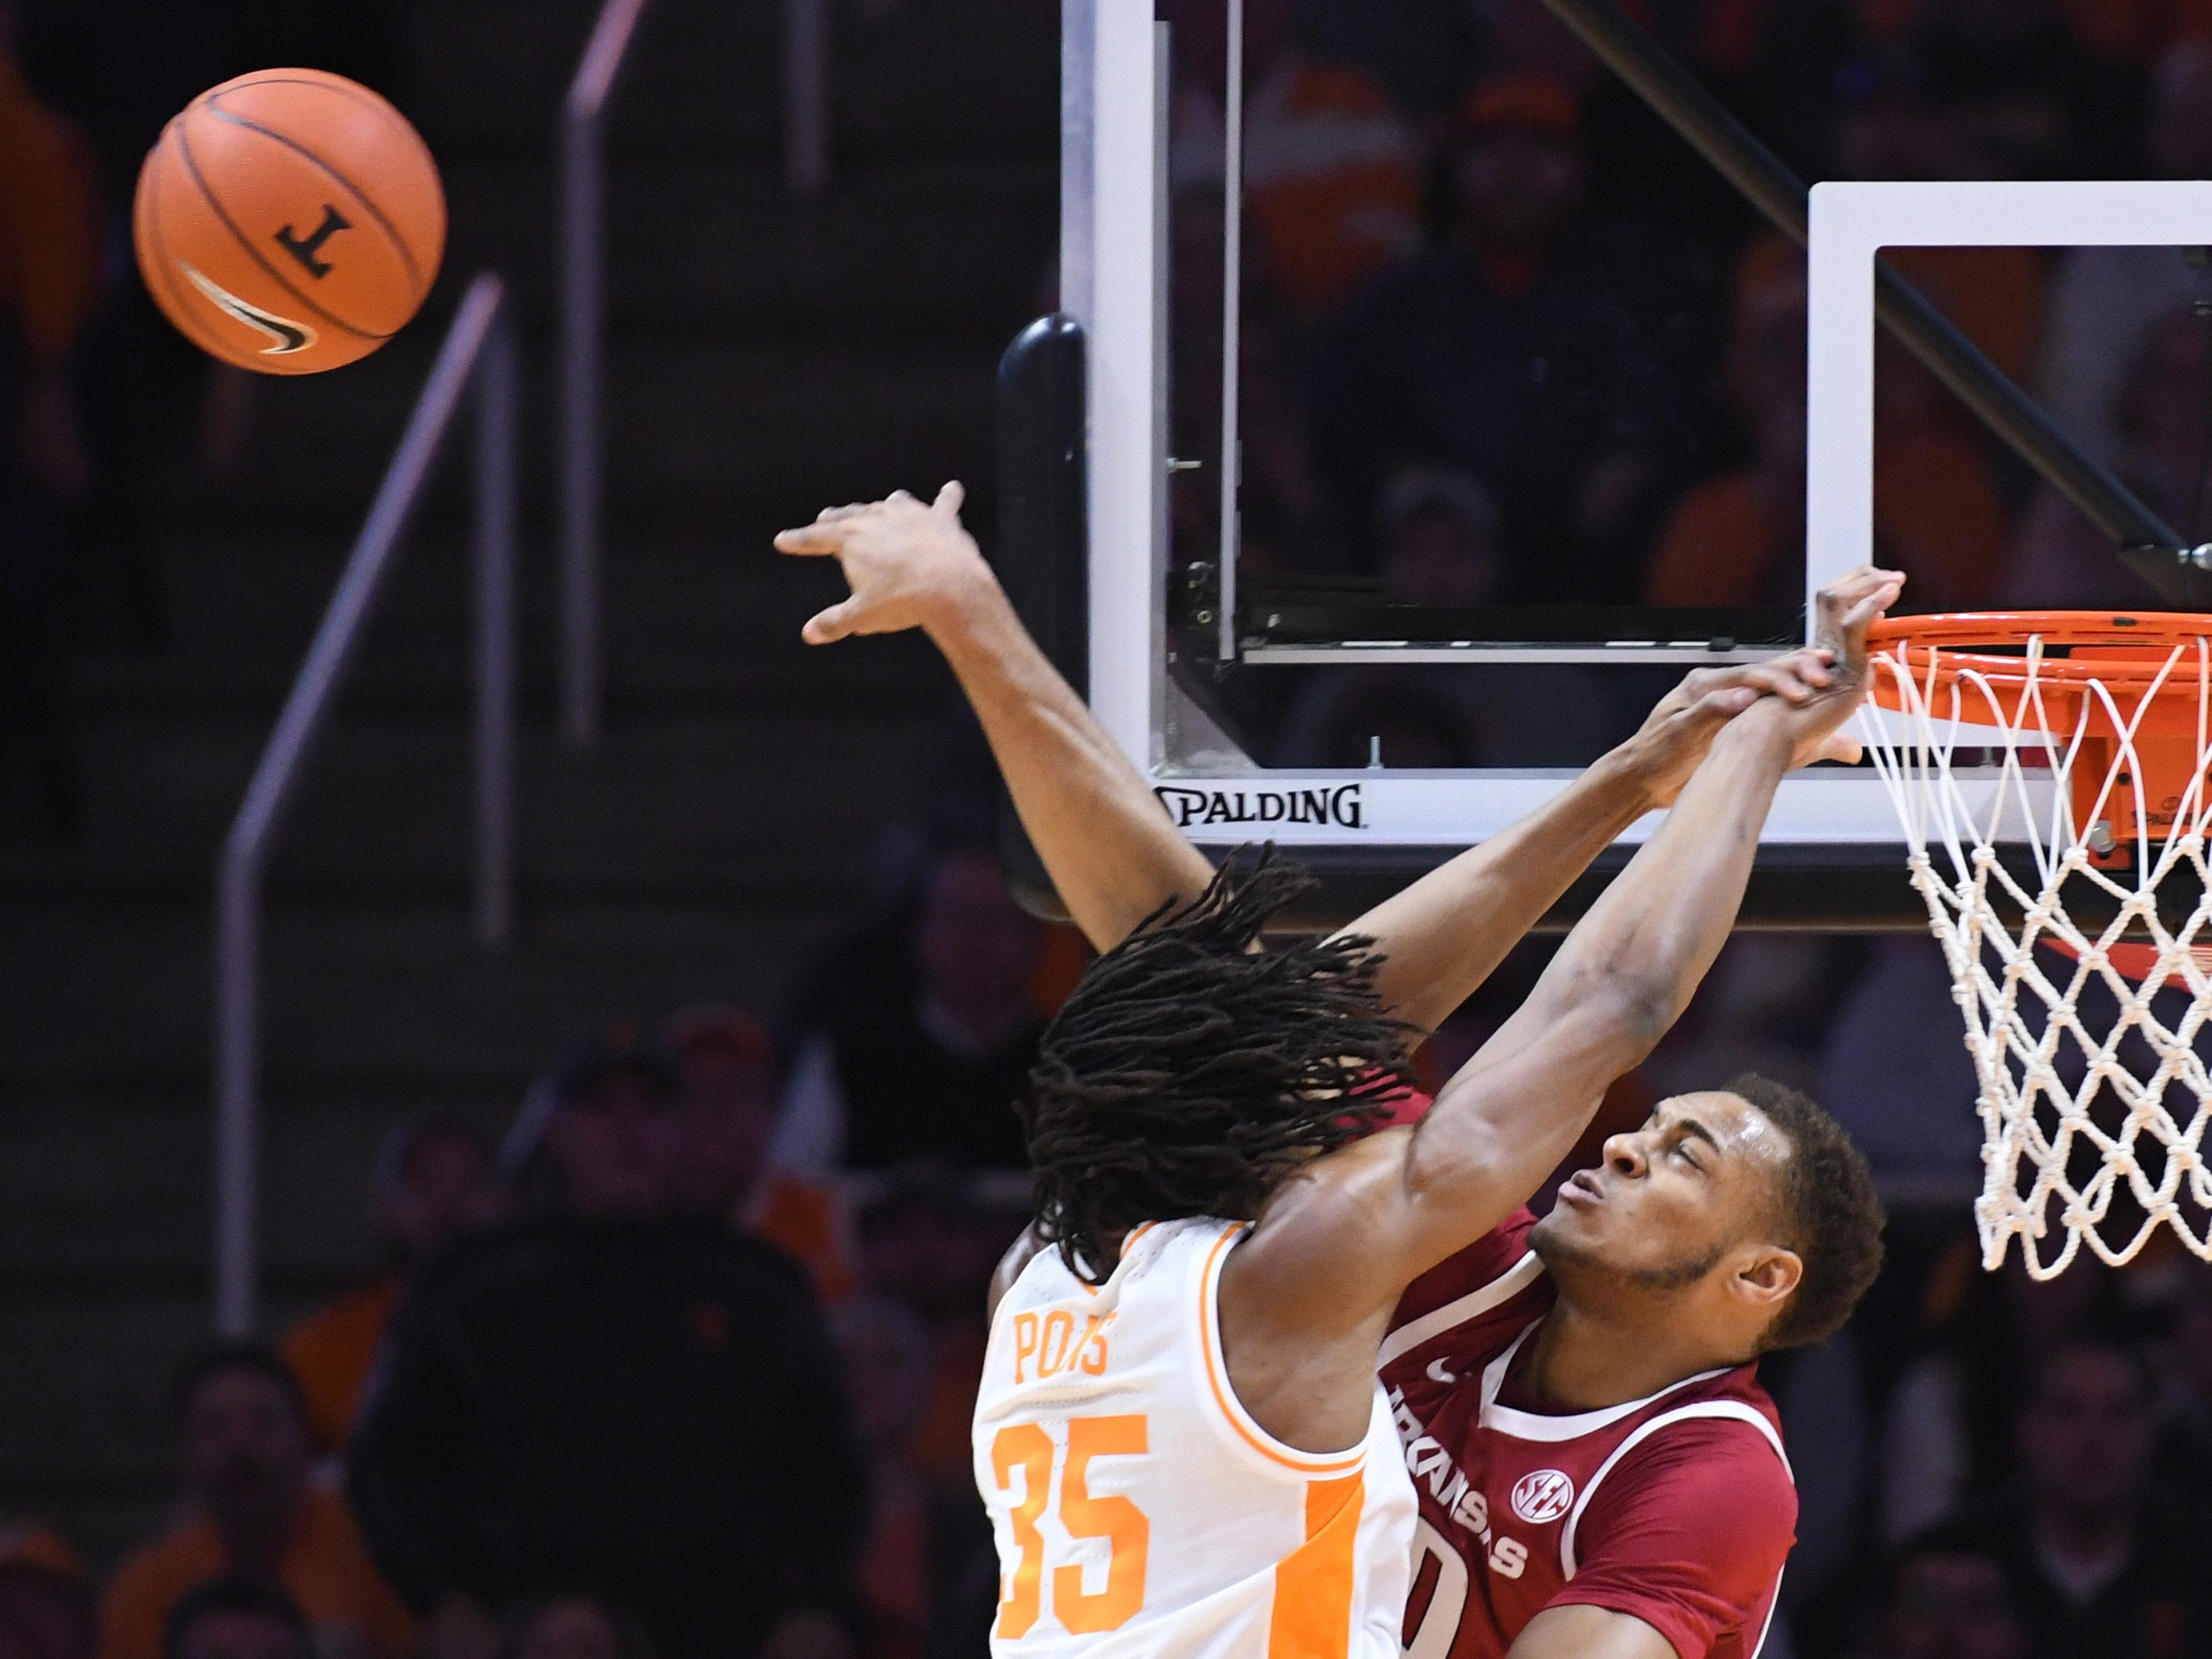 Arkansas Razorbacks forward Daniel Gafford (10) blocks a shot from Tennessee Volunteers forward Yves Pons (35) during the first half at Thompson-Boling Arena.